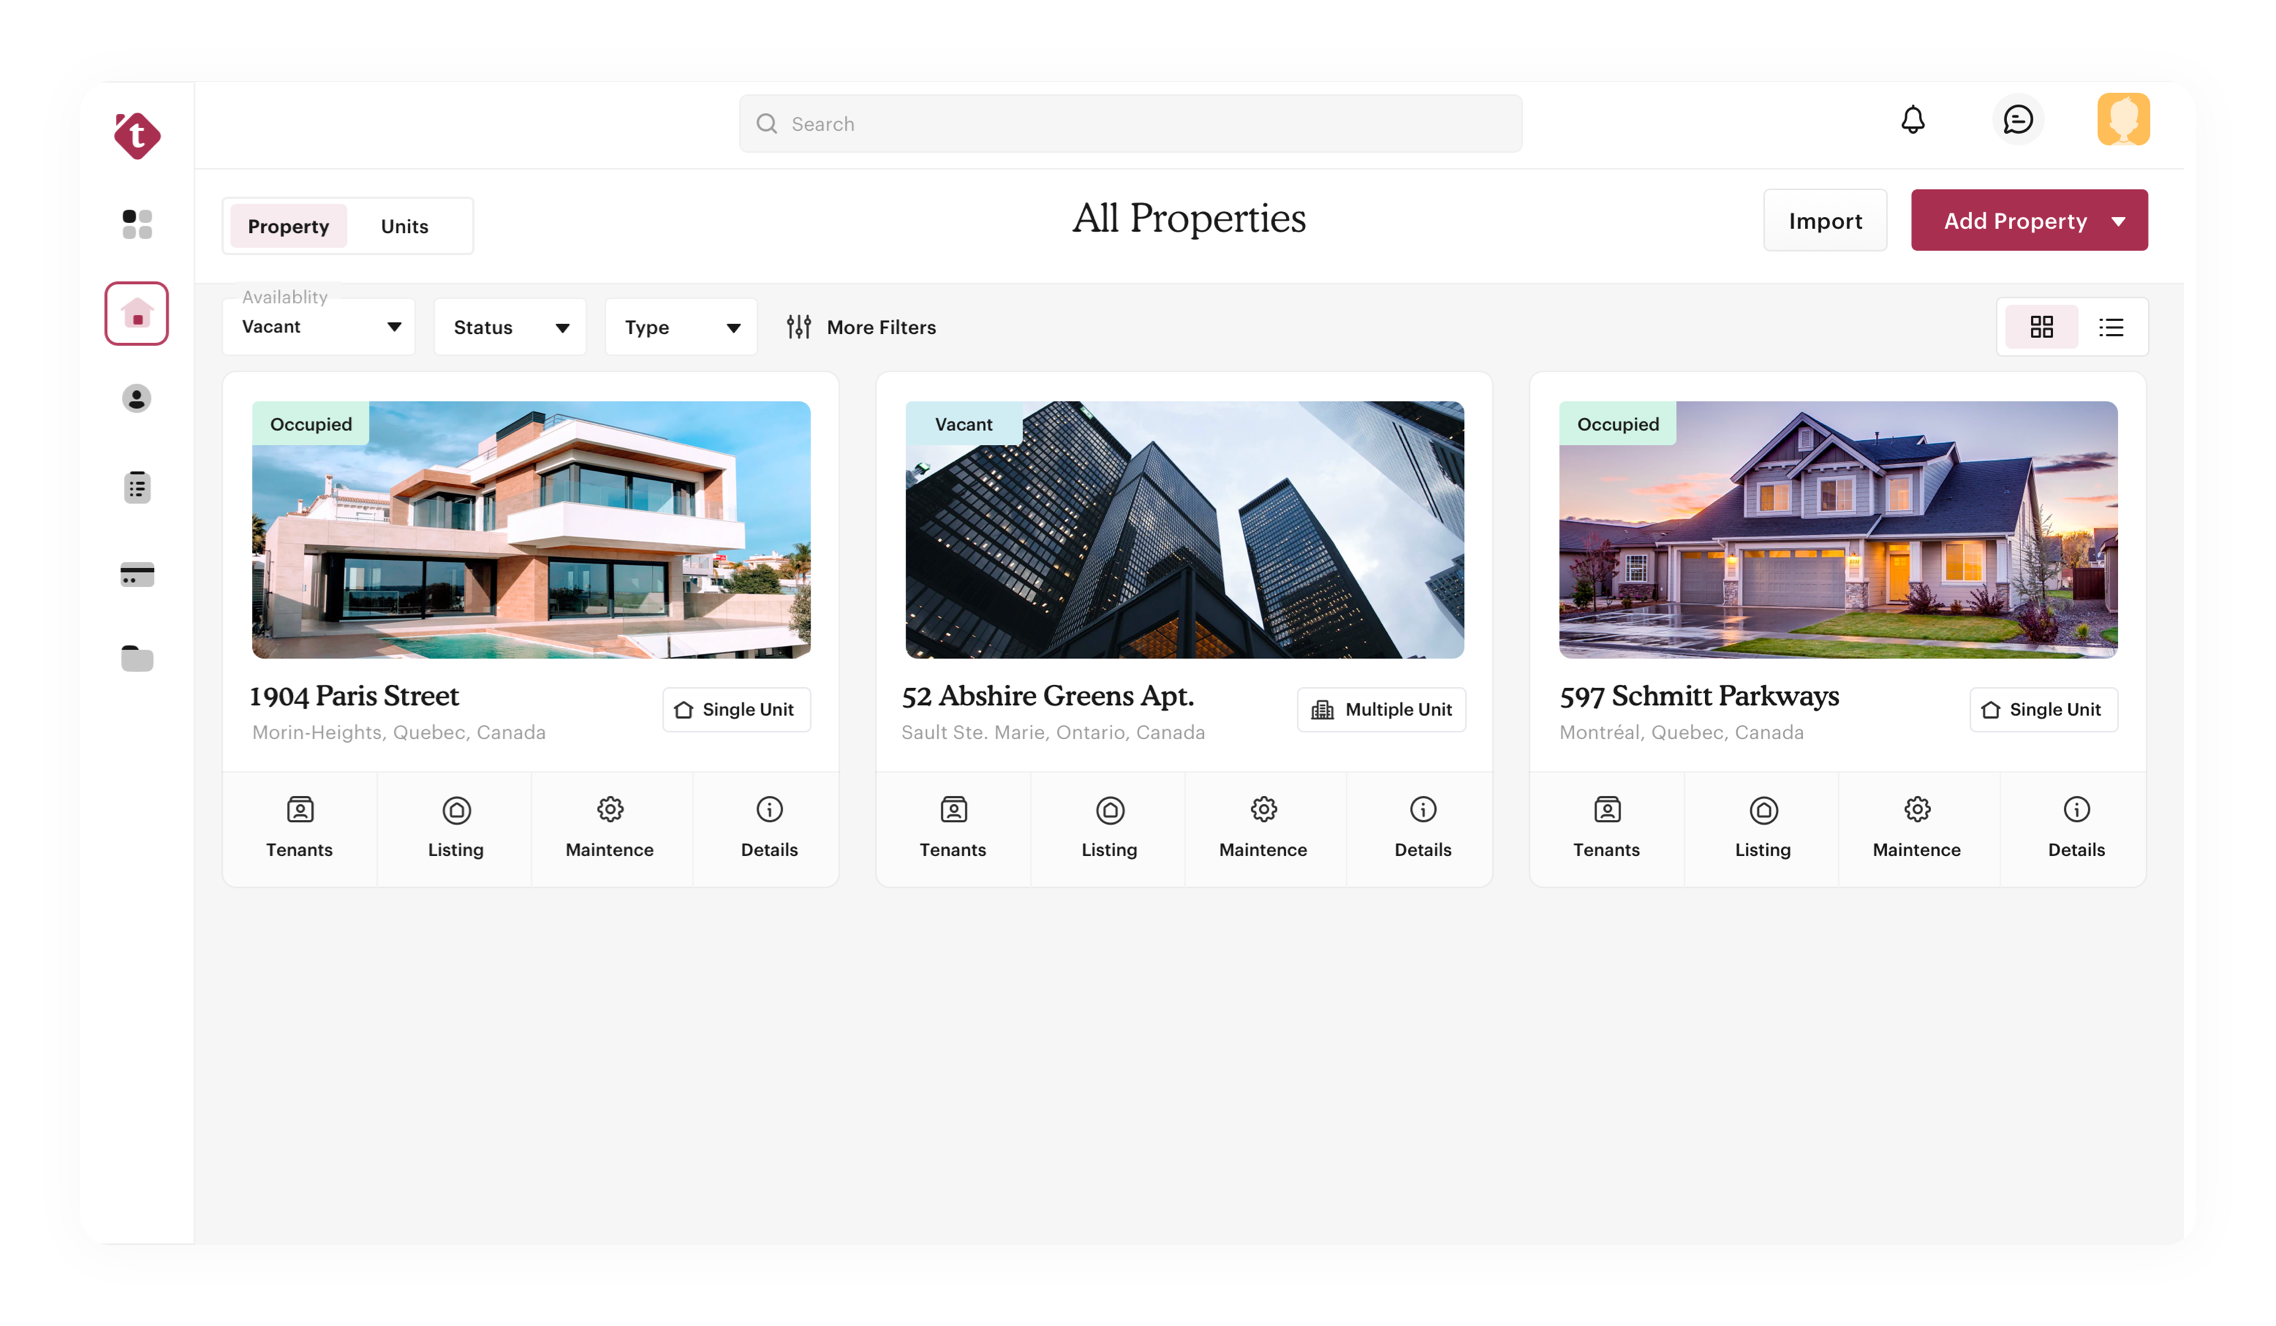 Advertise your property, find great tenants and onboard them in a few simple, hassle-free steps.